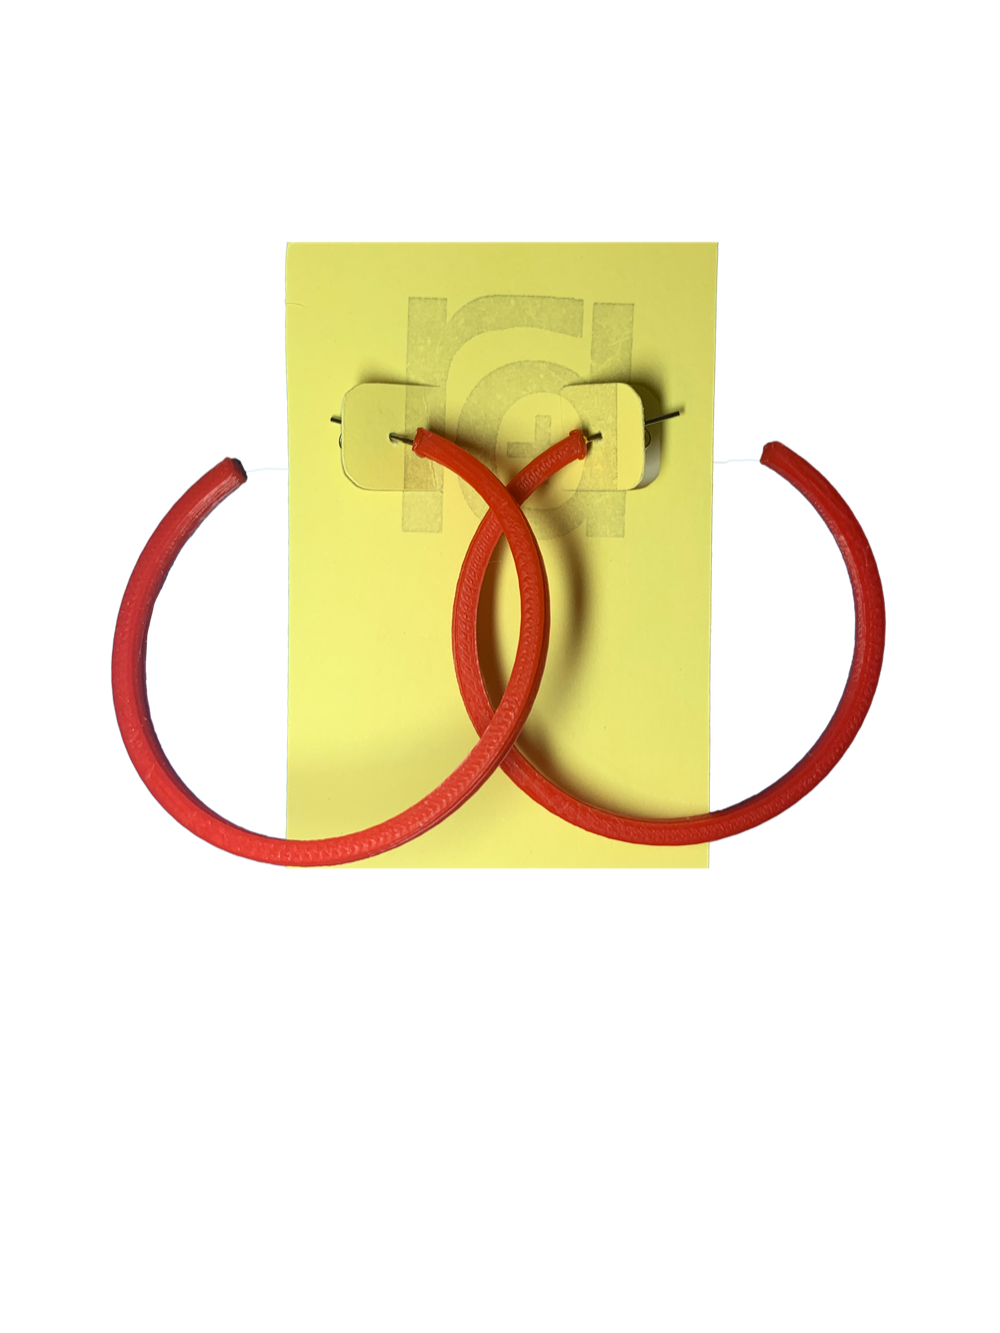 Shown on a yellow R+D card are two 3D printed hoop earrings. They are large two inch hoops in a bright red that are lightweight and plant based.